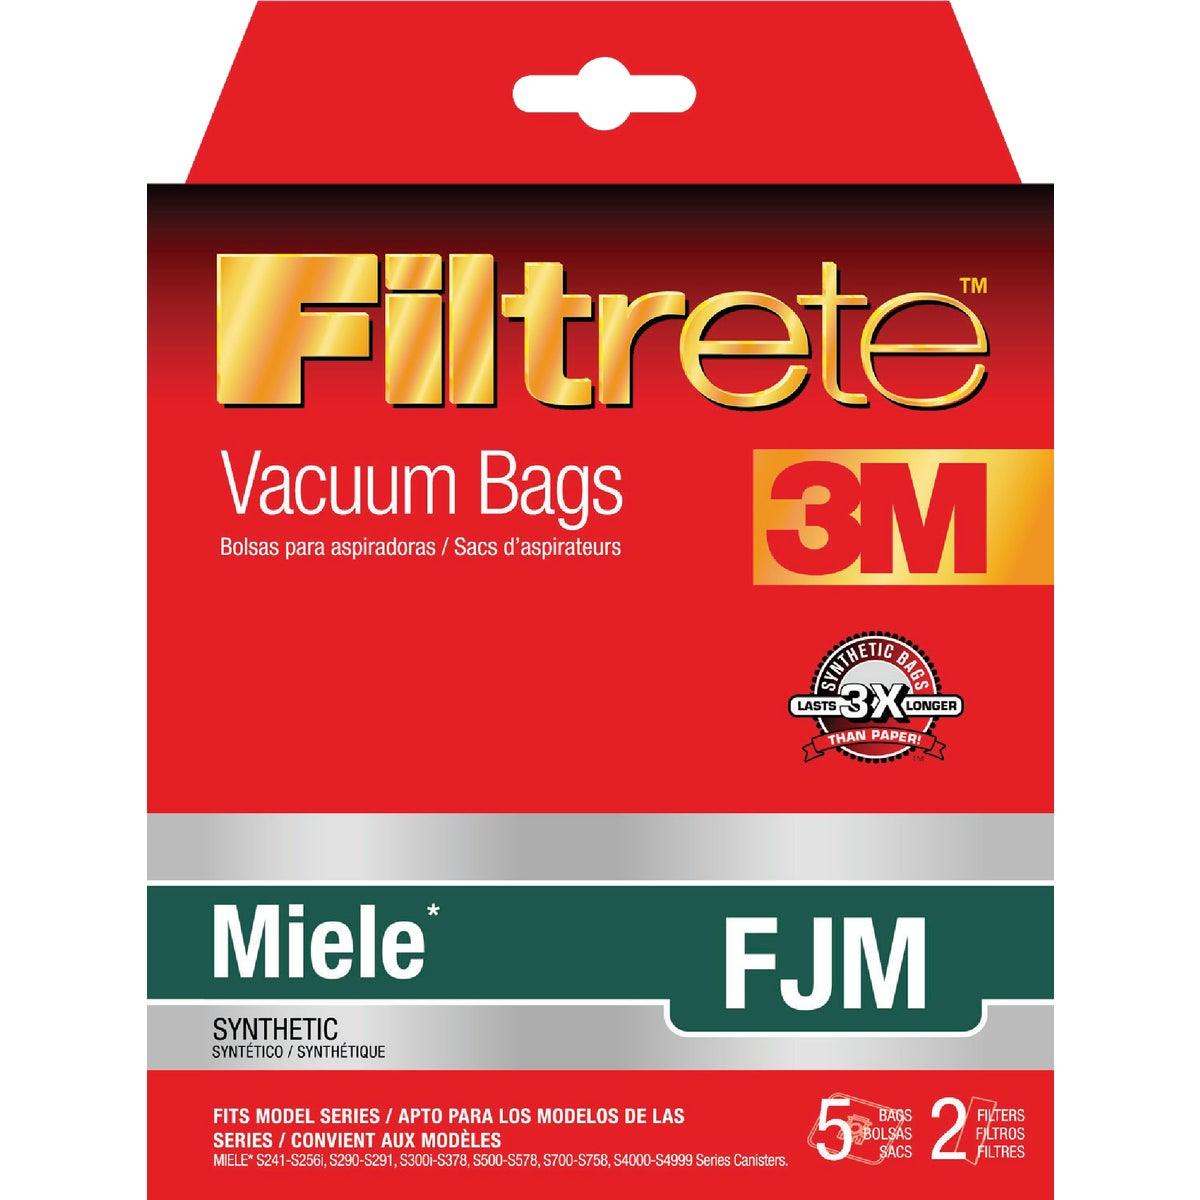 MIELE FJM VACUUM BAG - 68704-2 by Electrolux Home Care